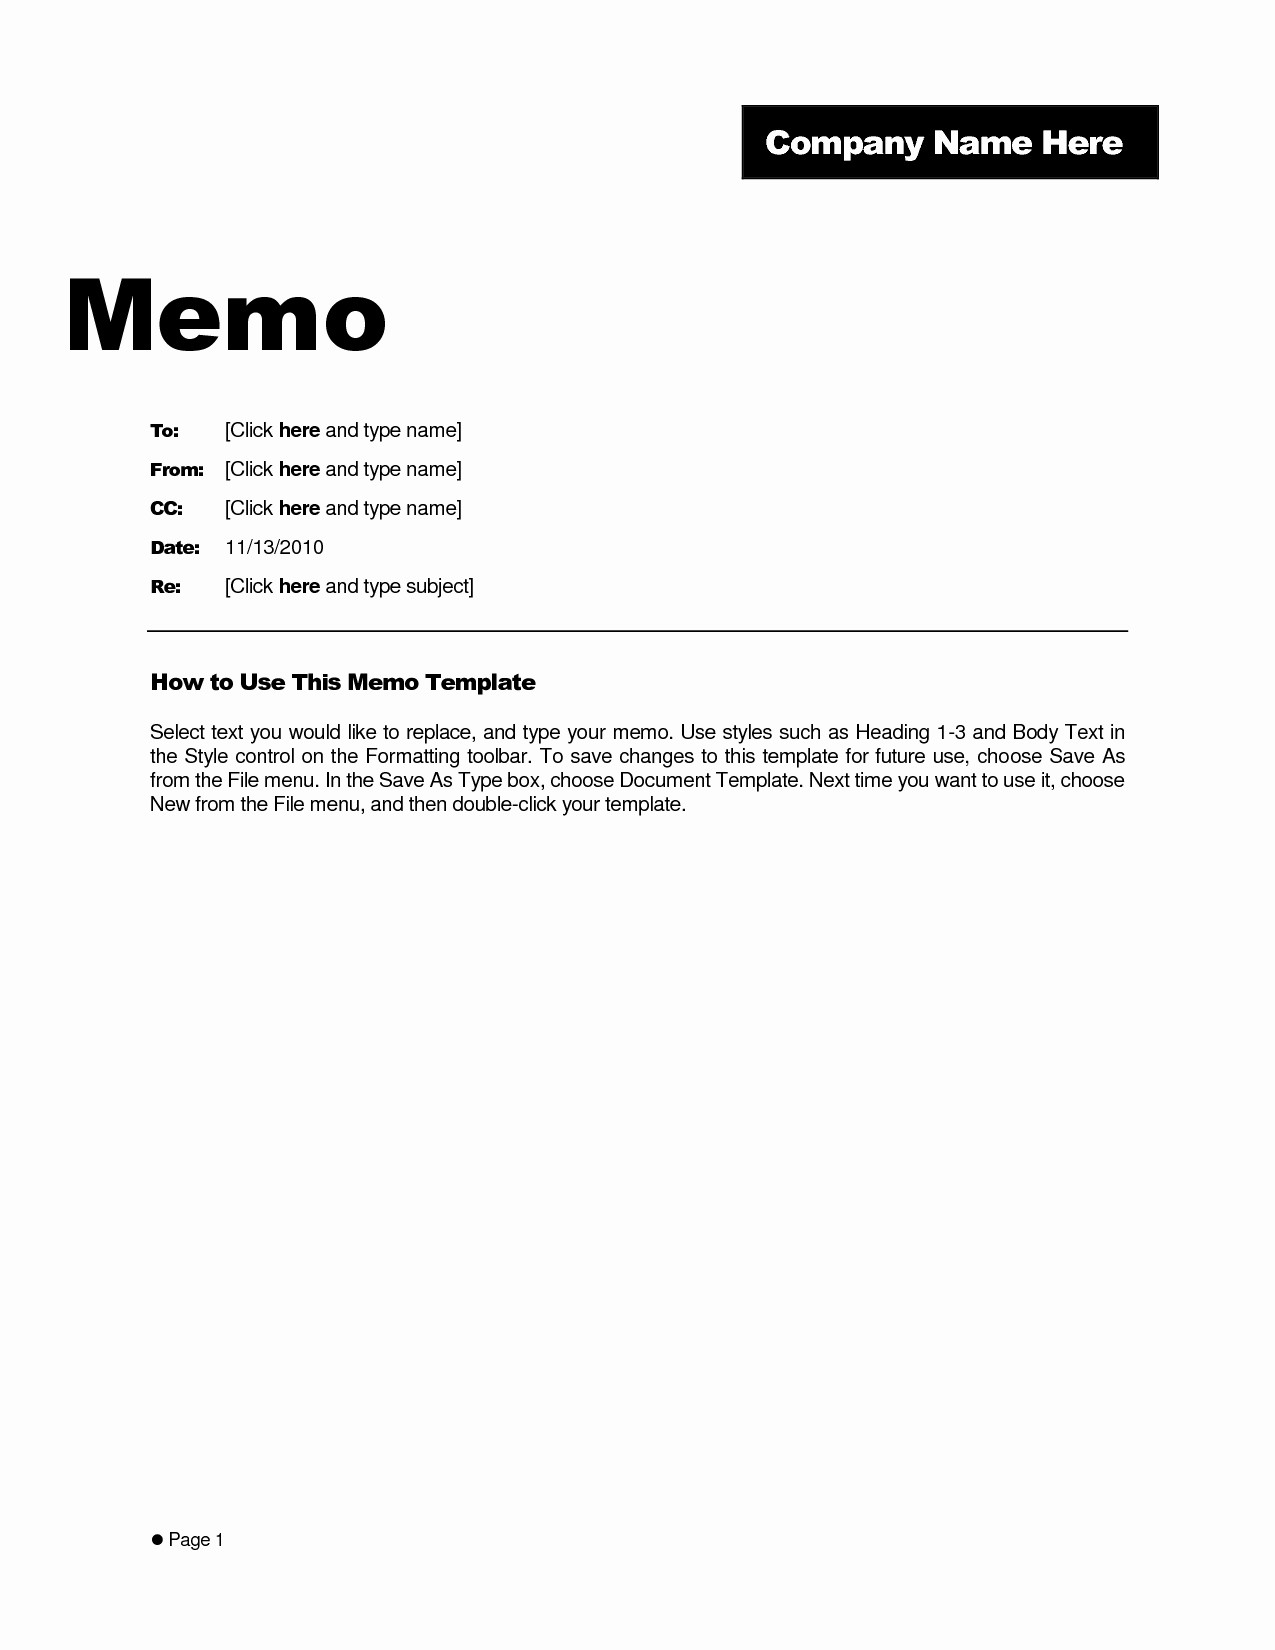 Ms Word Memo Templates Free Elegant Business Memo format Microsoft Word